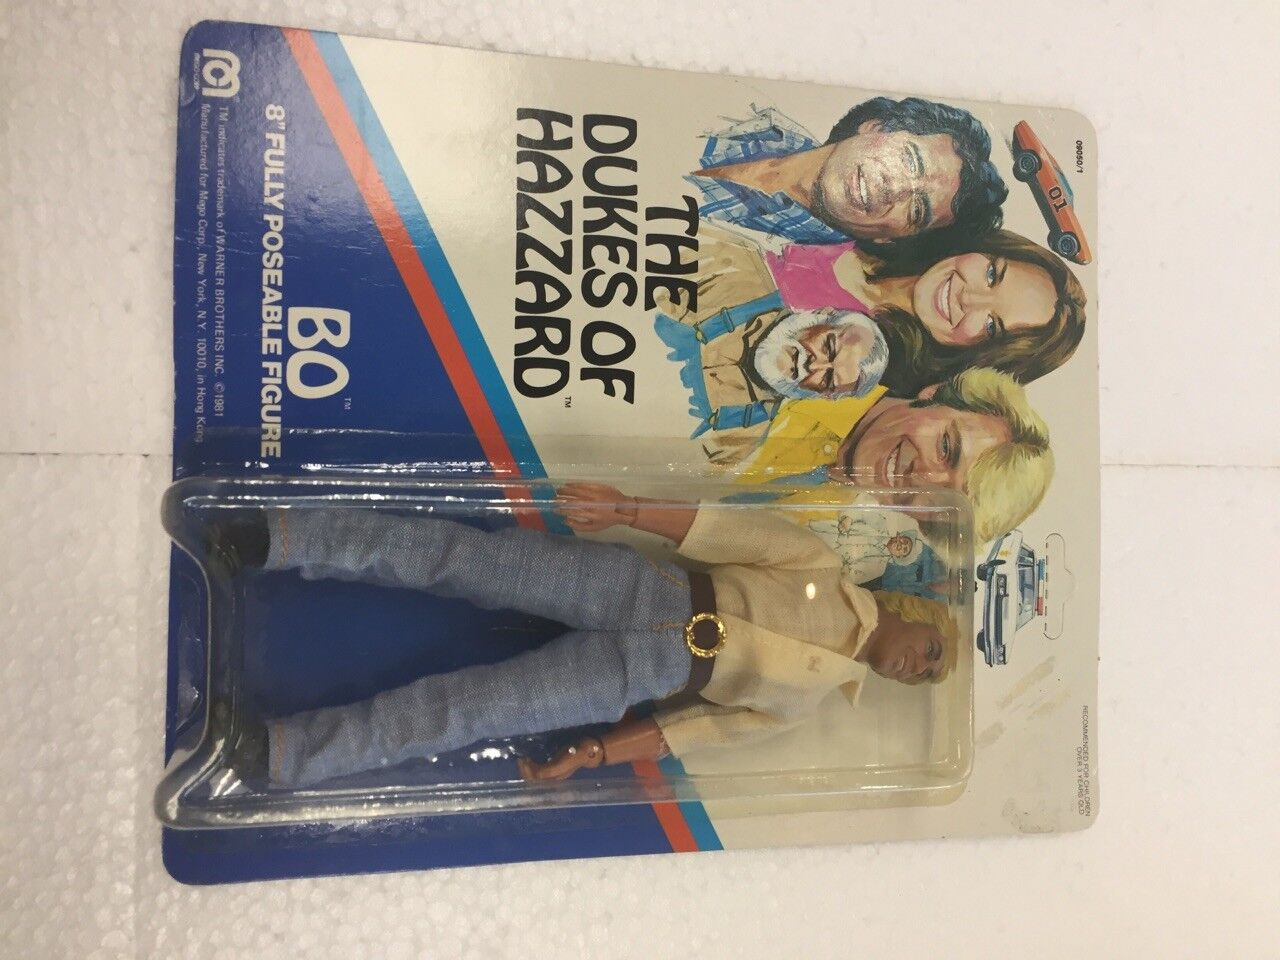 The Dukes Dukes Dukes of Hazzard Bo (1981 Mego) 72abc5